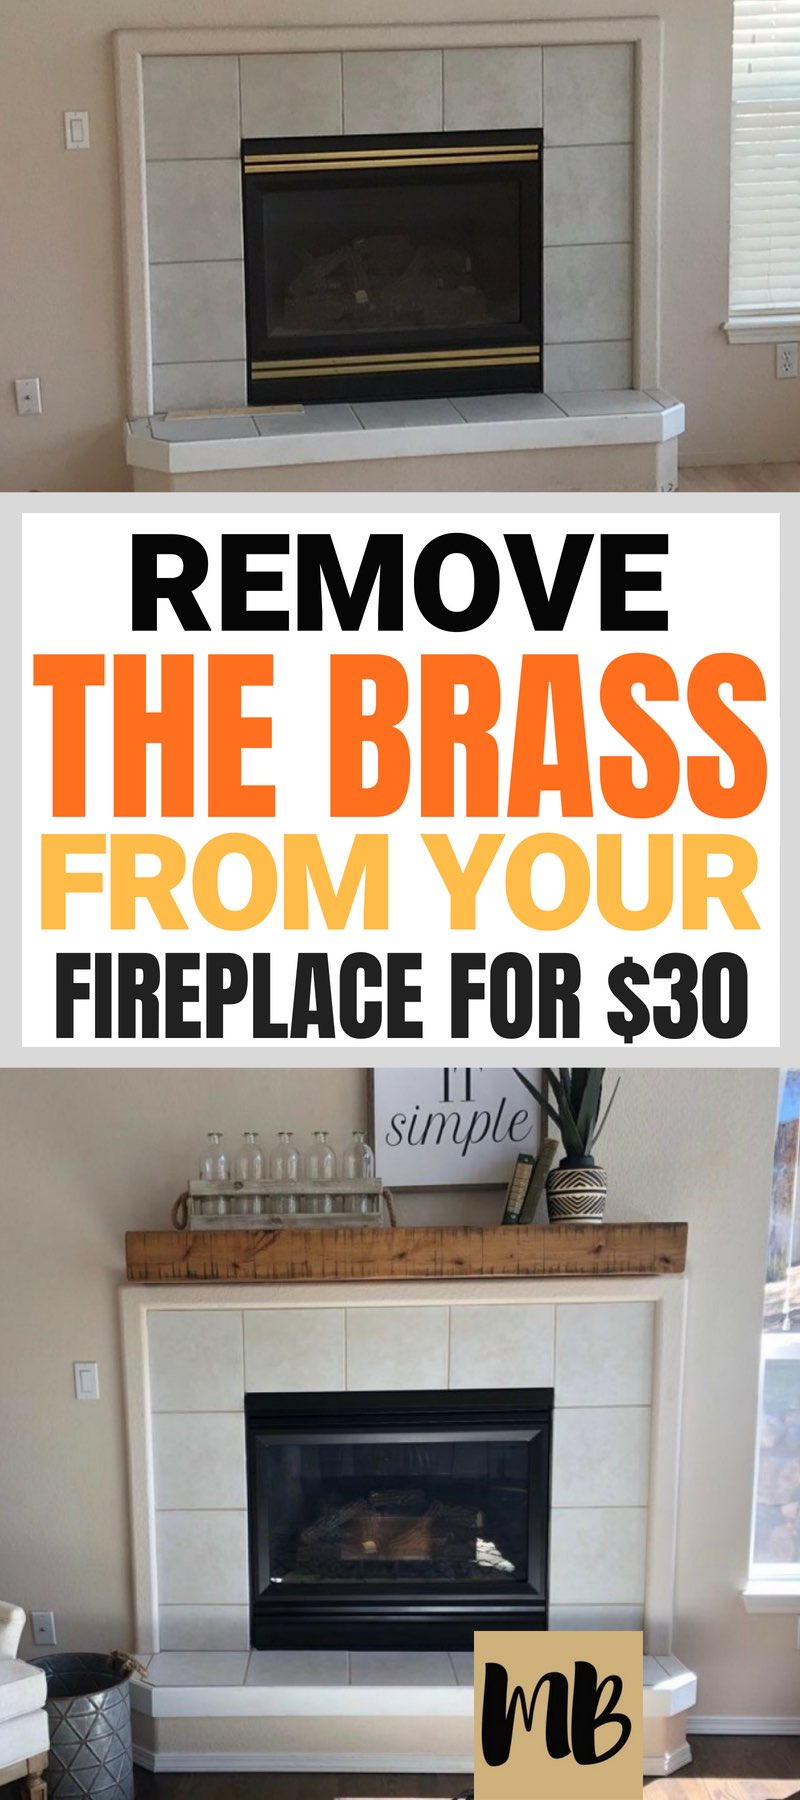 Remove the brass from your fireplace #fireplacemakeover